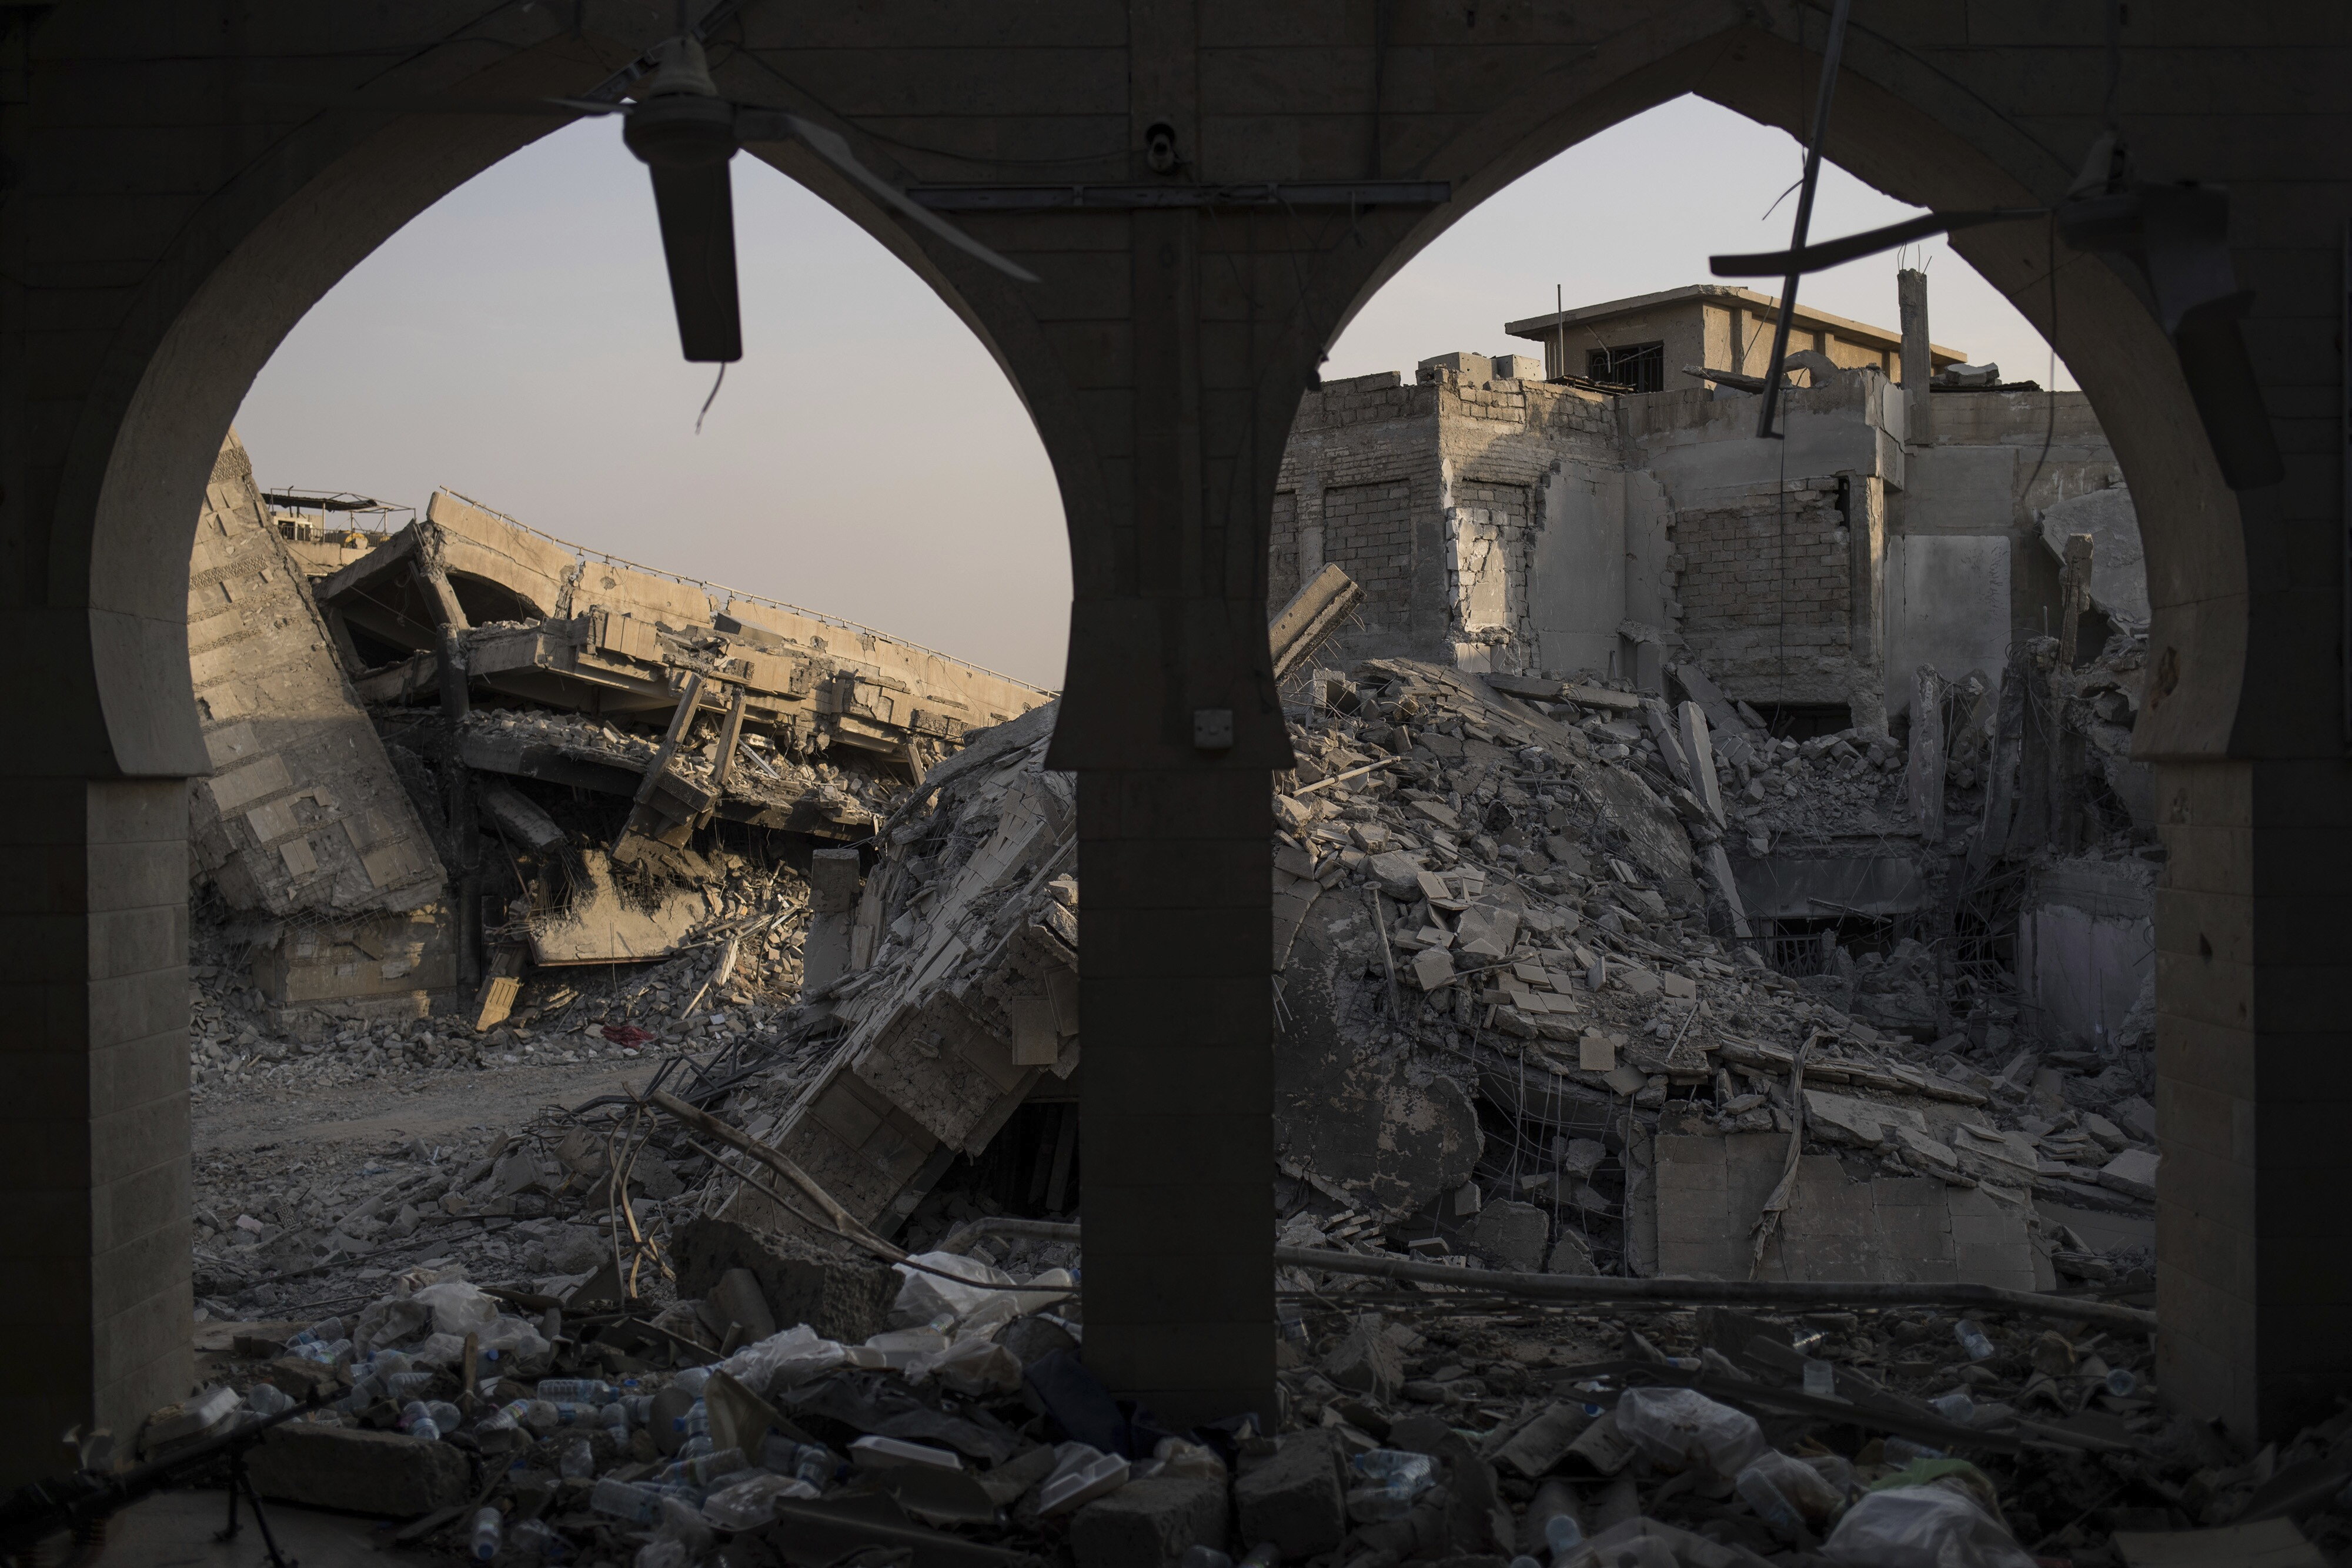 ISIS Had The Ingredients To Make A Dirty Bomb Report